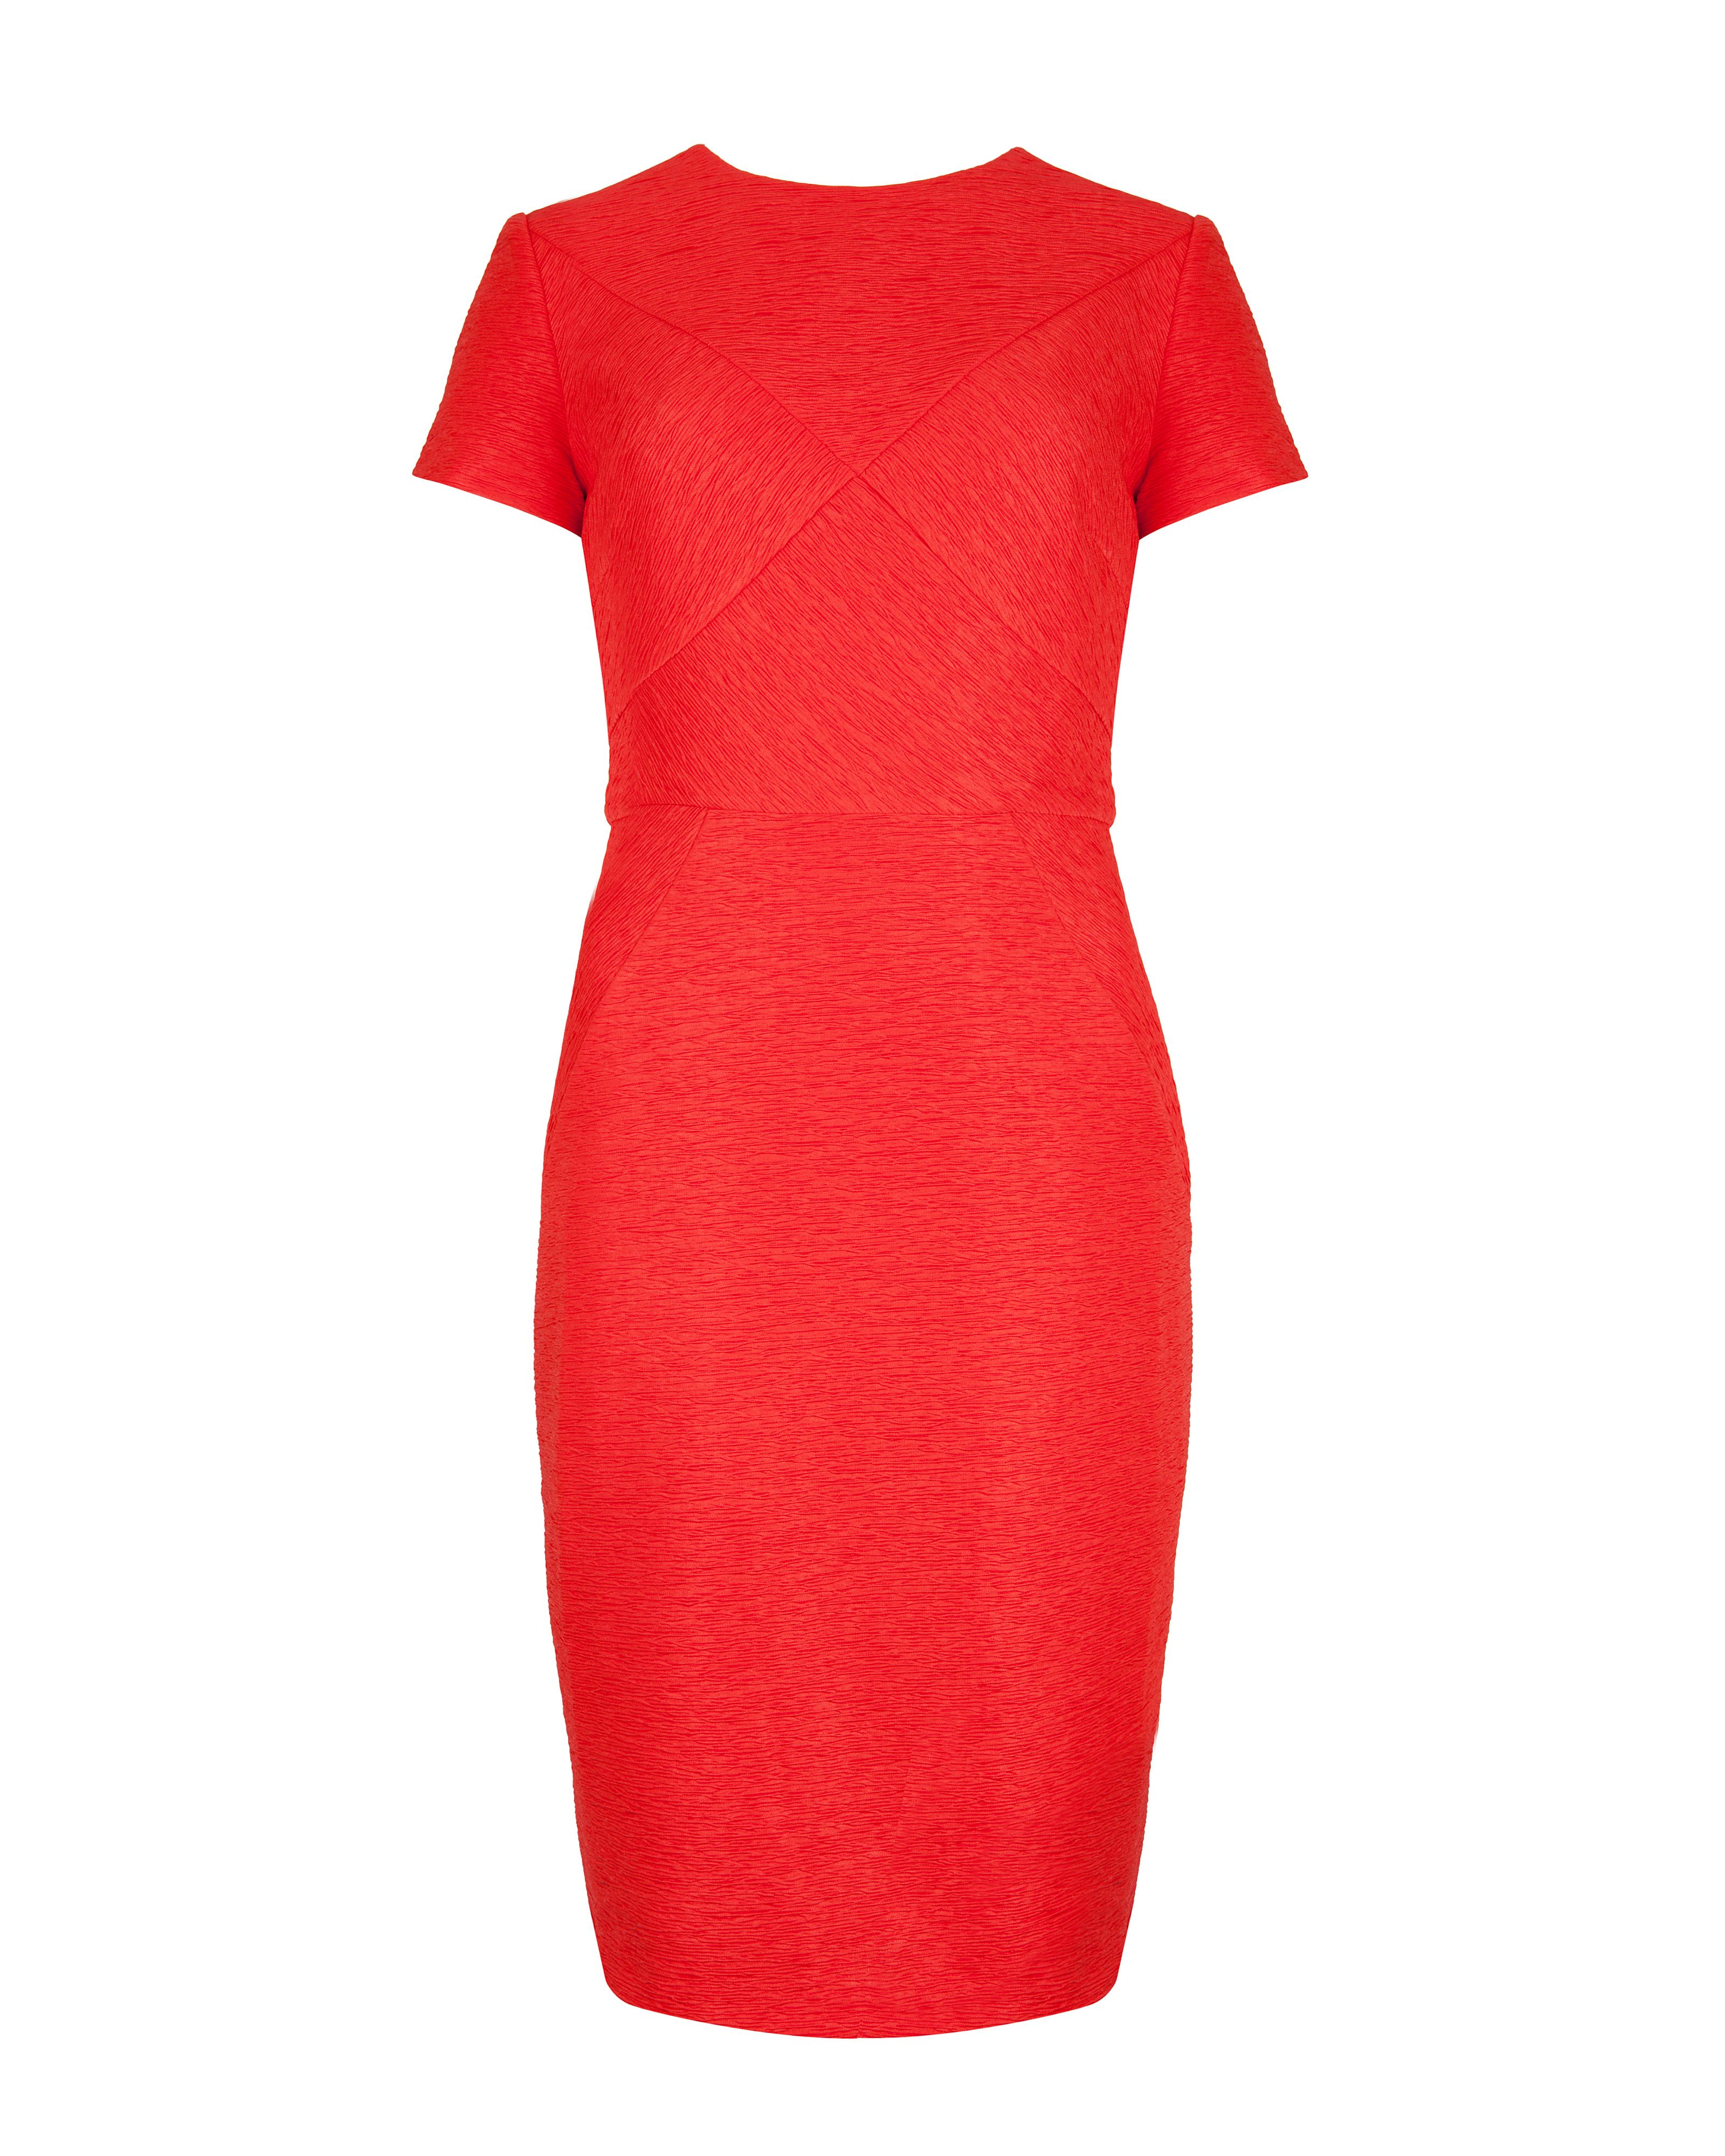 Nedeli textured bodycon dress